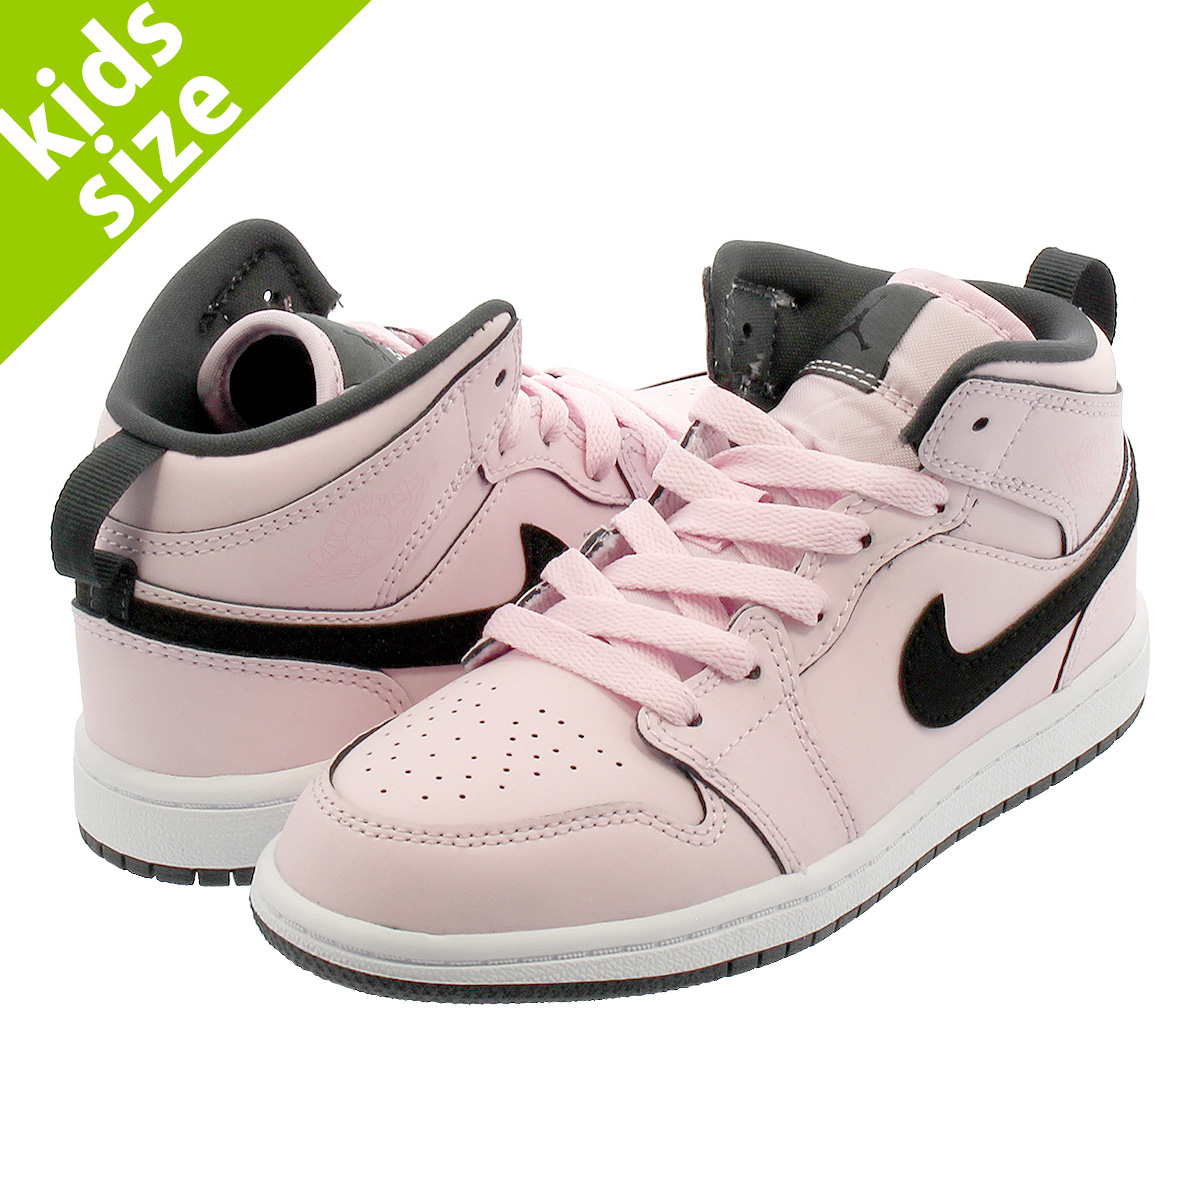 a23bbb821038b7  キッズサイズ  16-22cm  NIKE AIR JORDAN 1 MID PS ナイキ エア ジョーダン 1 ミッド PS PINK  FOAM BLACK WHITE ANTHRACITE 640737-601  即日発送  NIKE ...